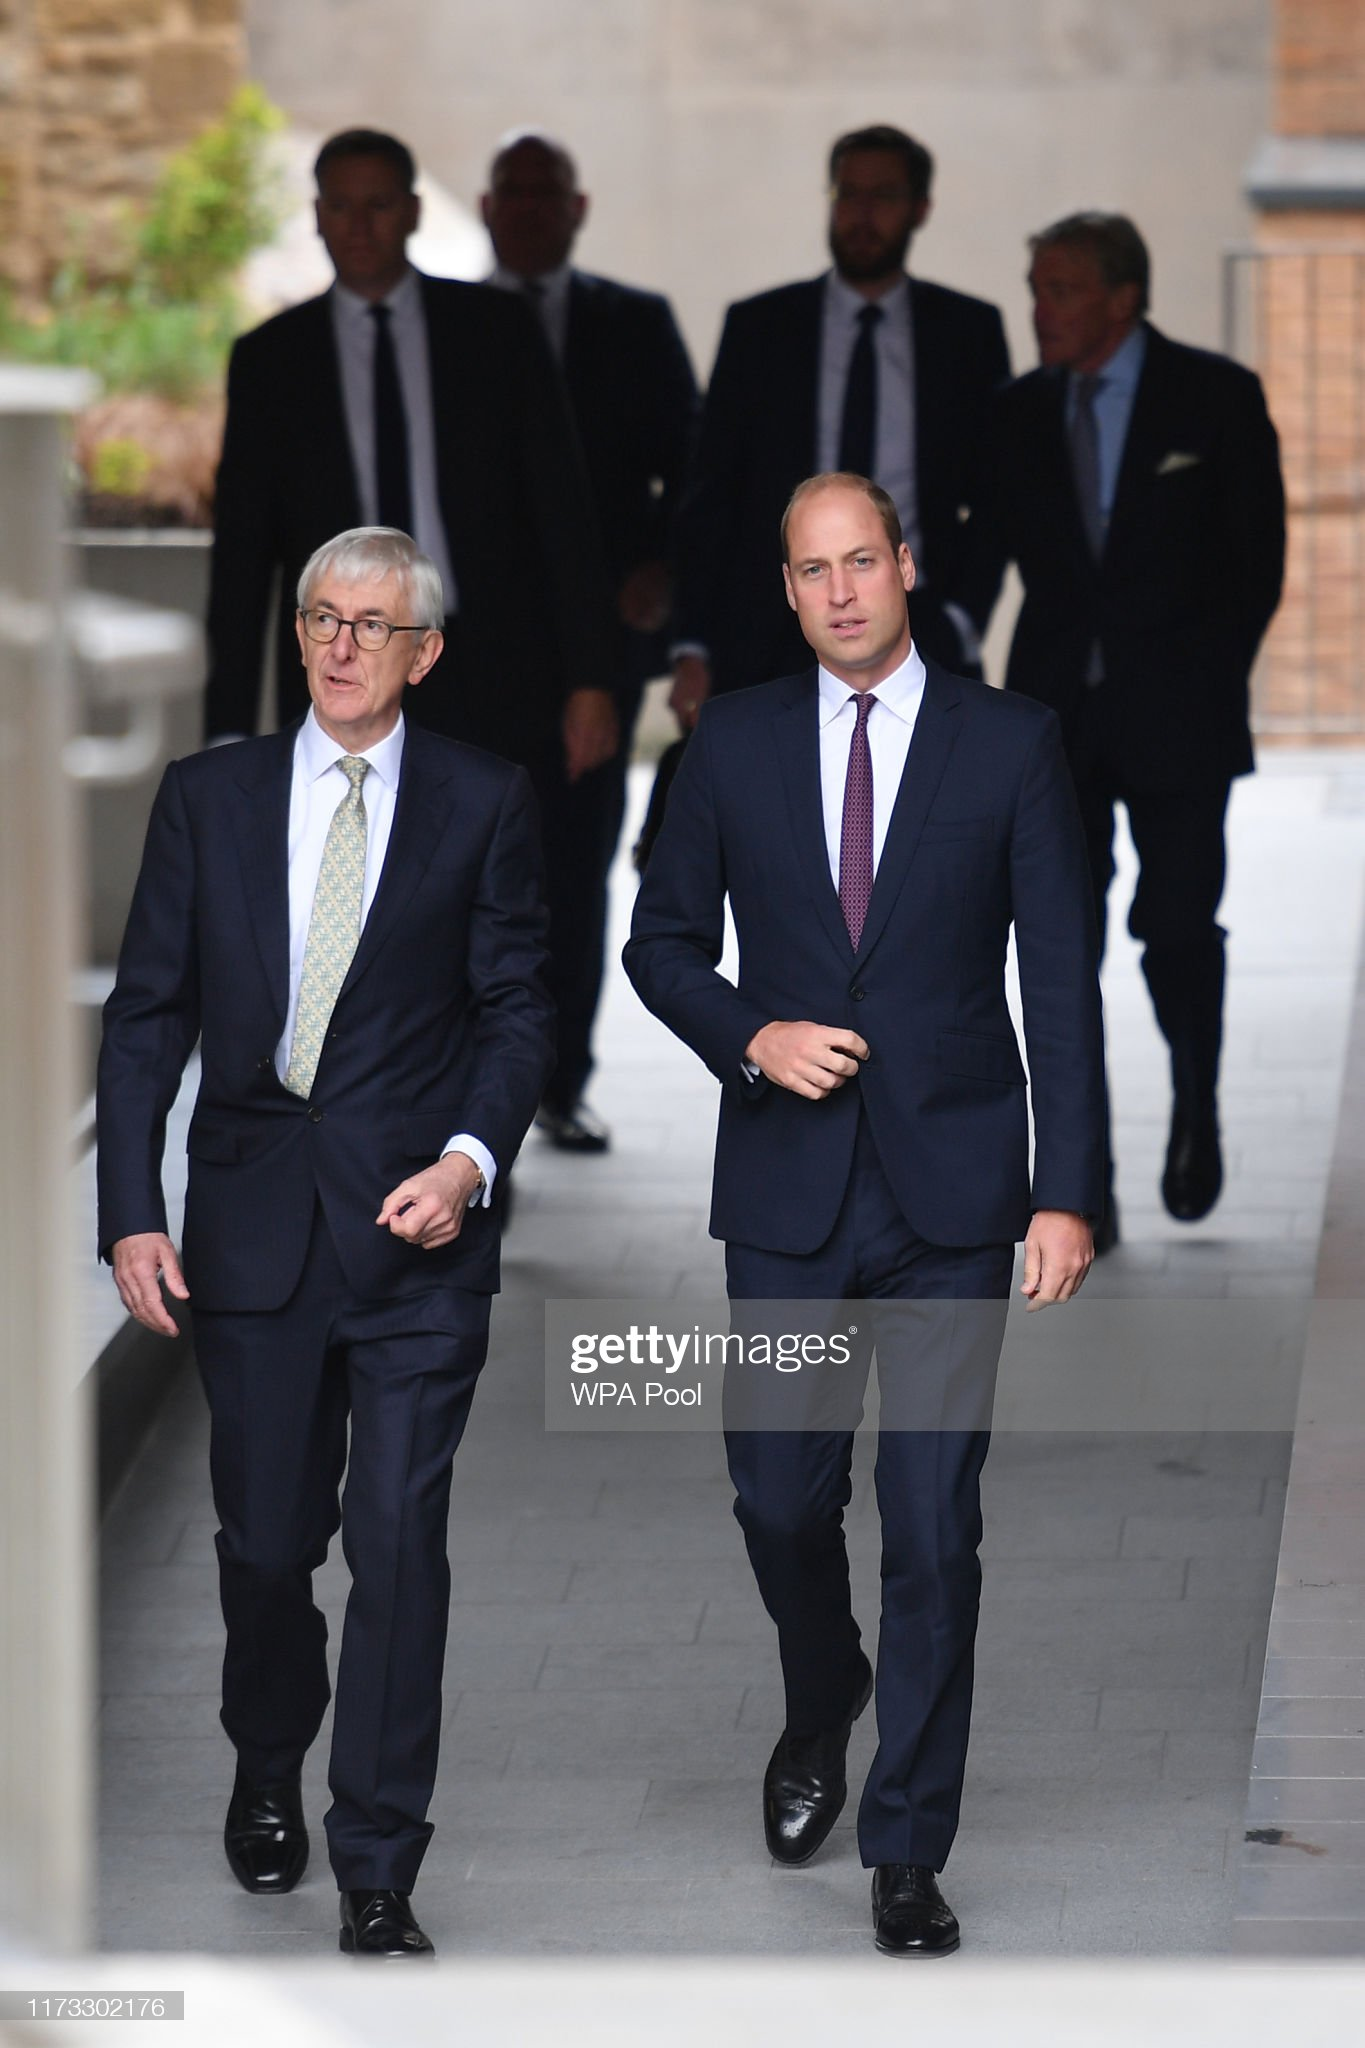 prince-william-duke-of-cambridge-arrives-with-the-warden-of-keble-picture-id1173302176